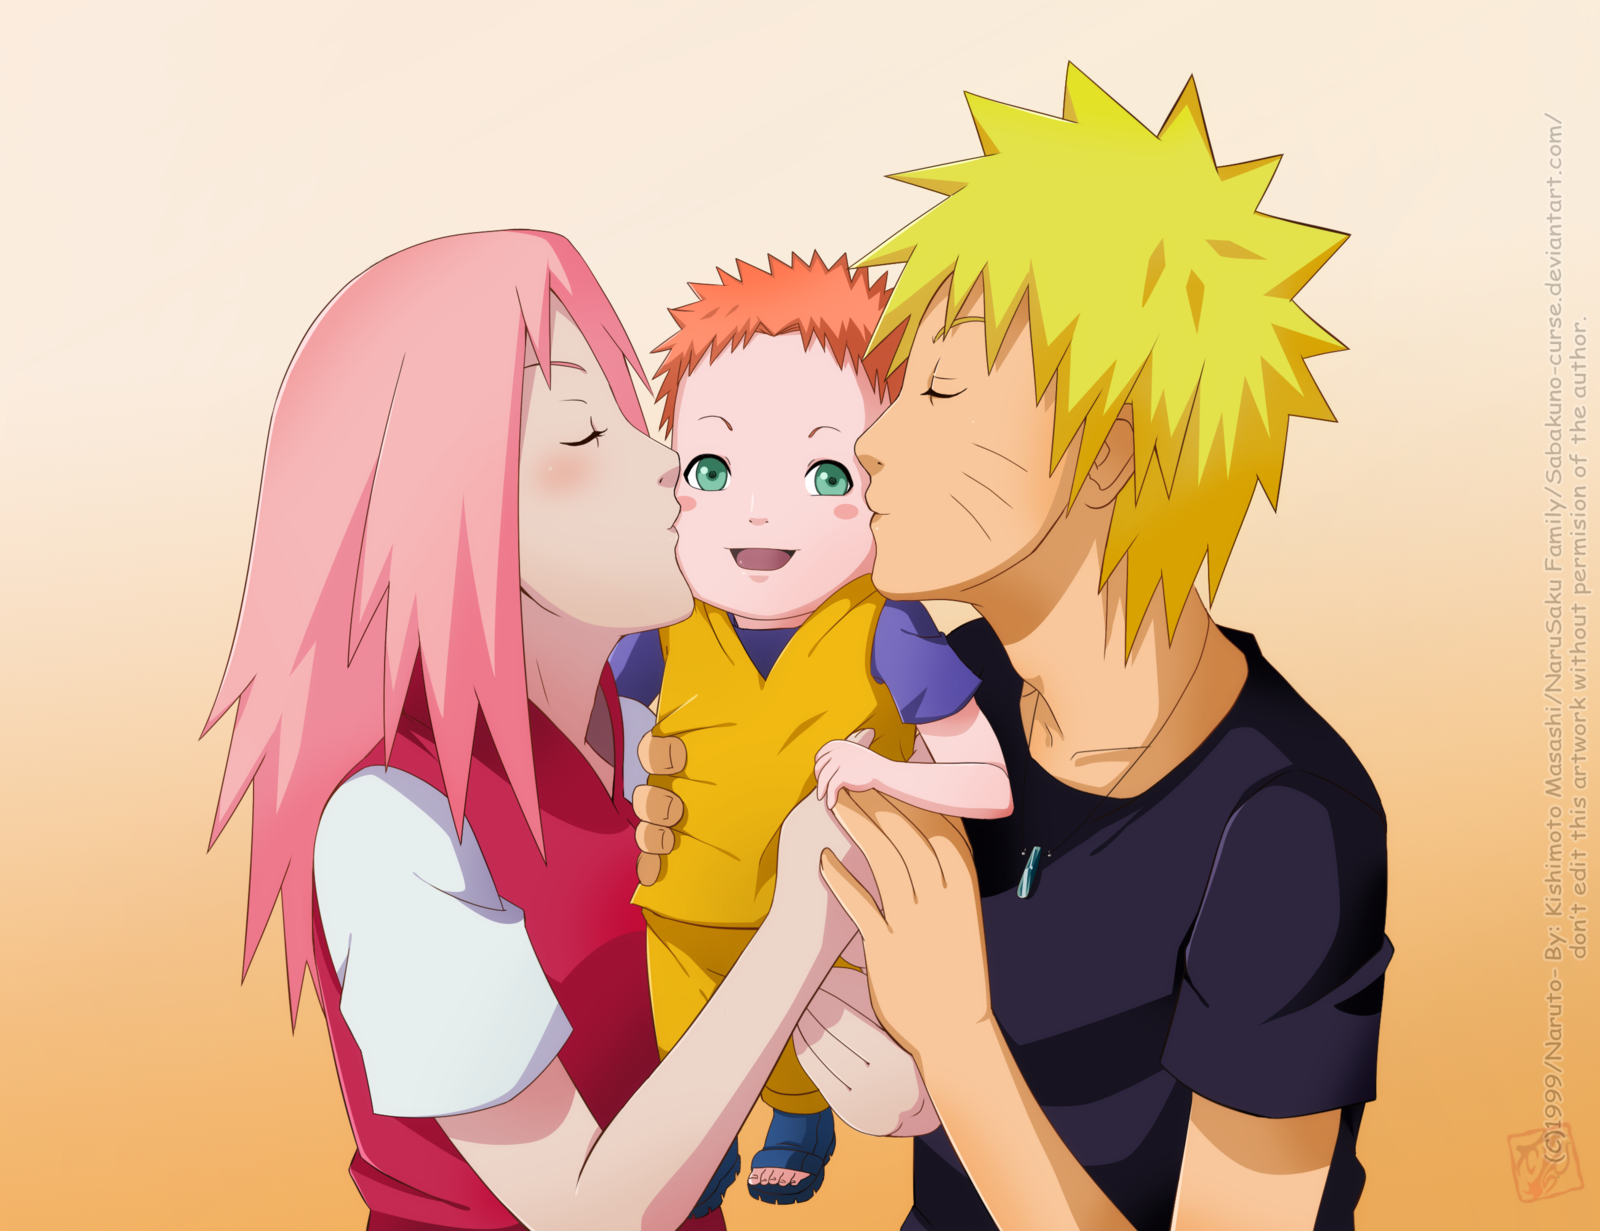 http://narutoinfoid.files.wordpress.com/2013/03/narusaku_family_by_sabakunocurse-d5t49tf.png